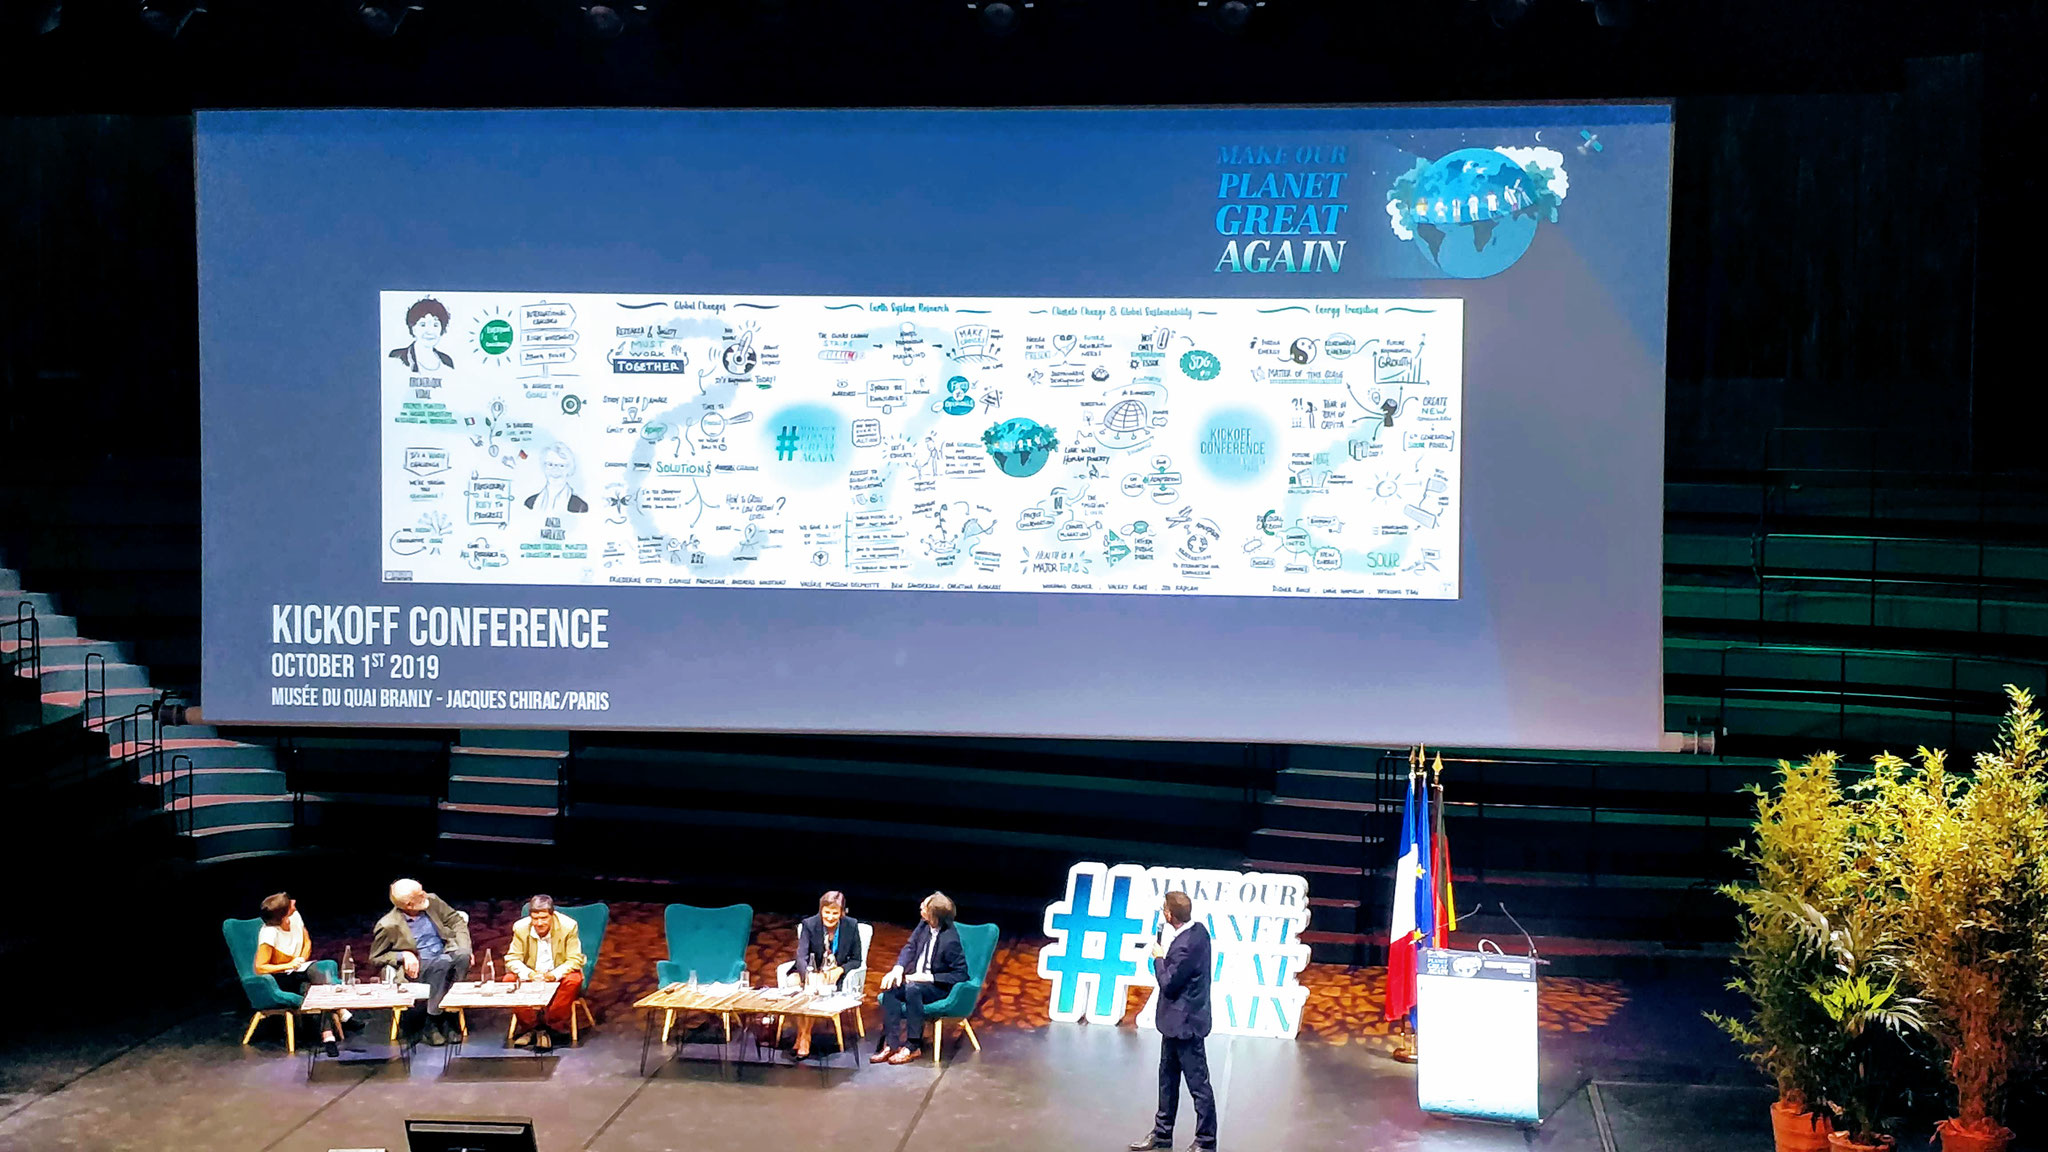 Scribing Conférence #MakeOurPlanetGreatAgain, Musée Quai Branly